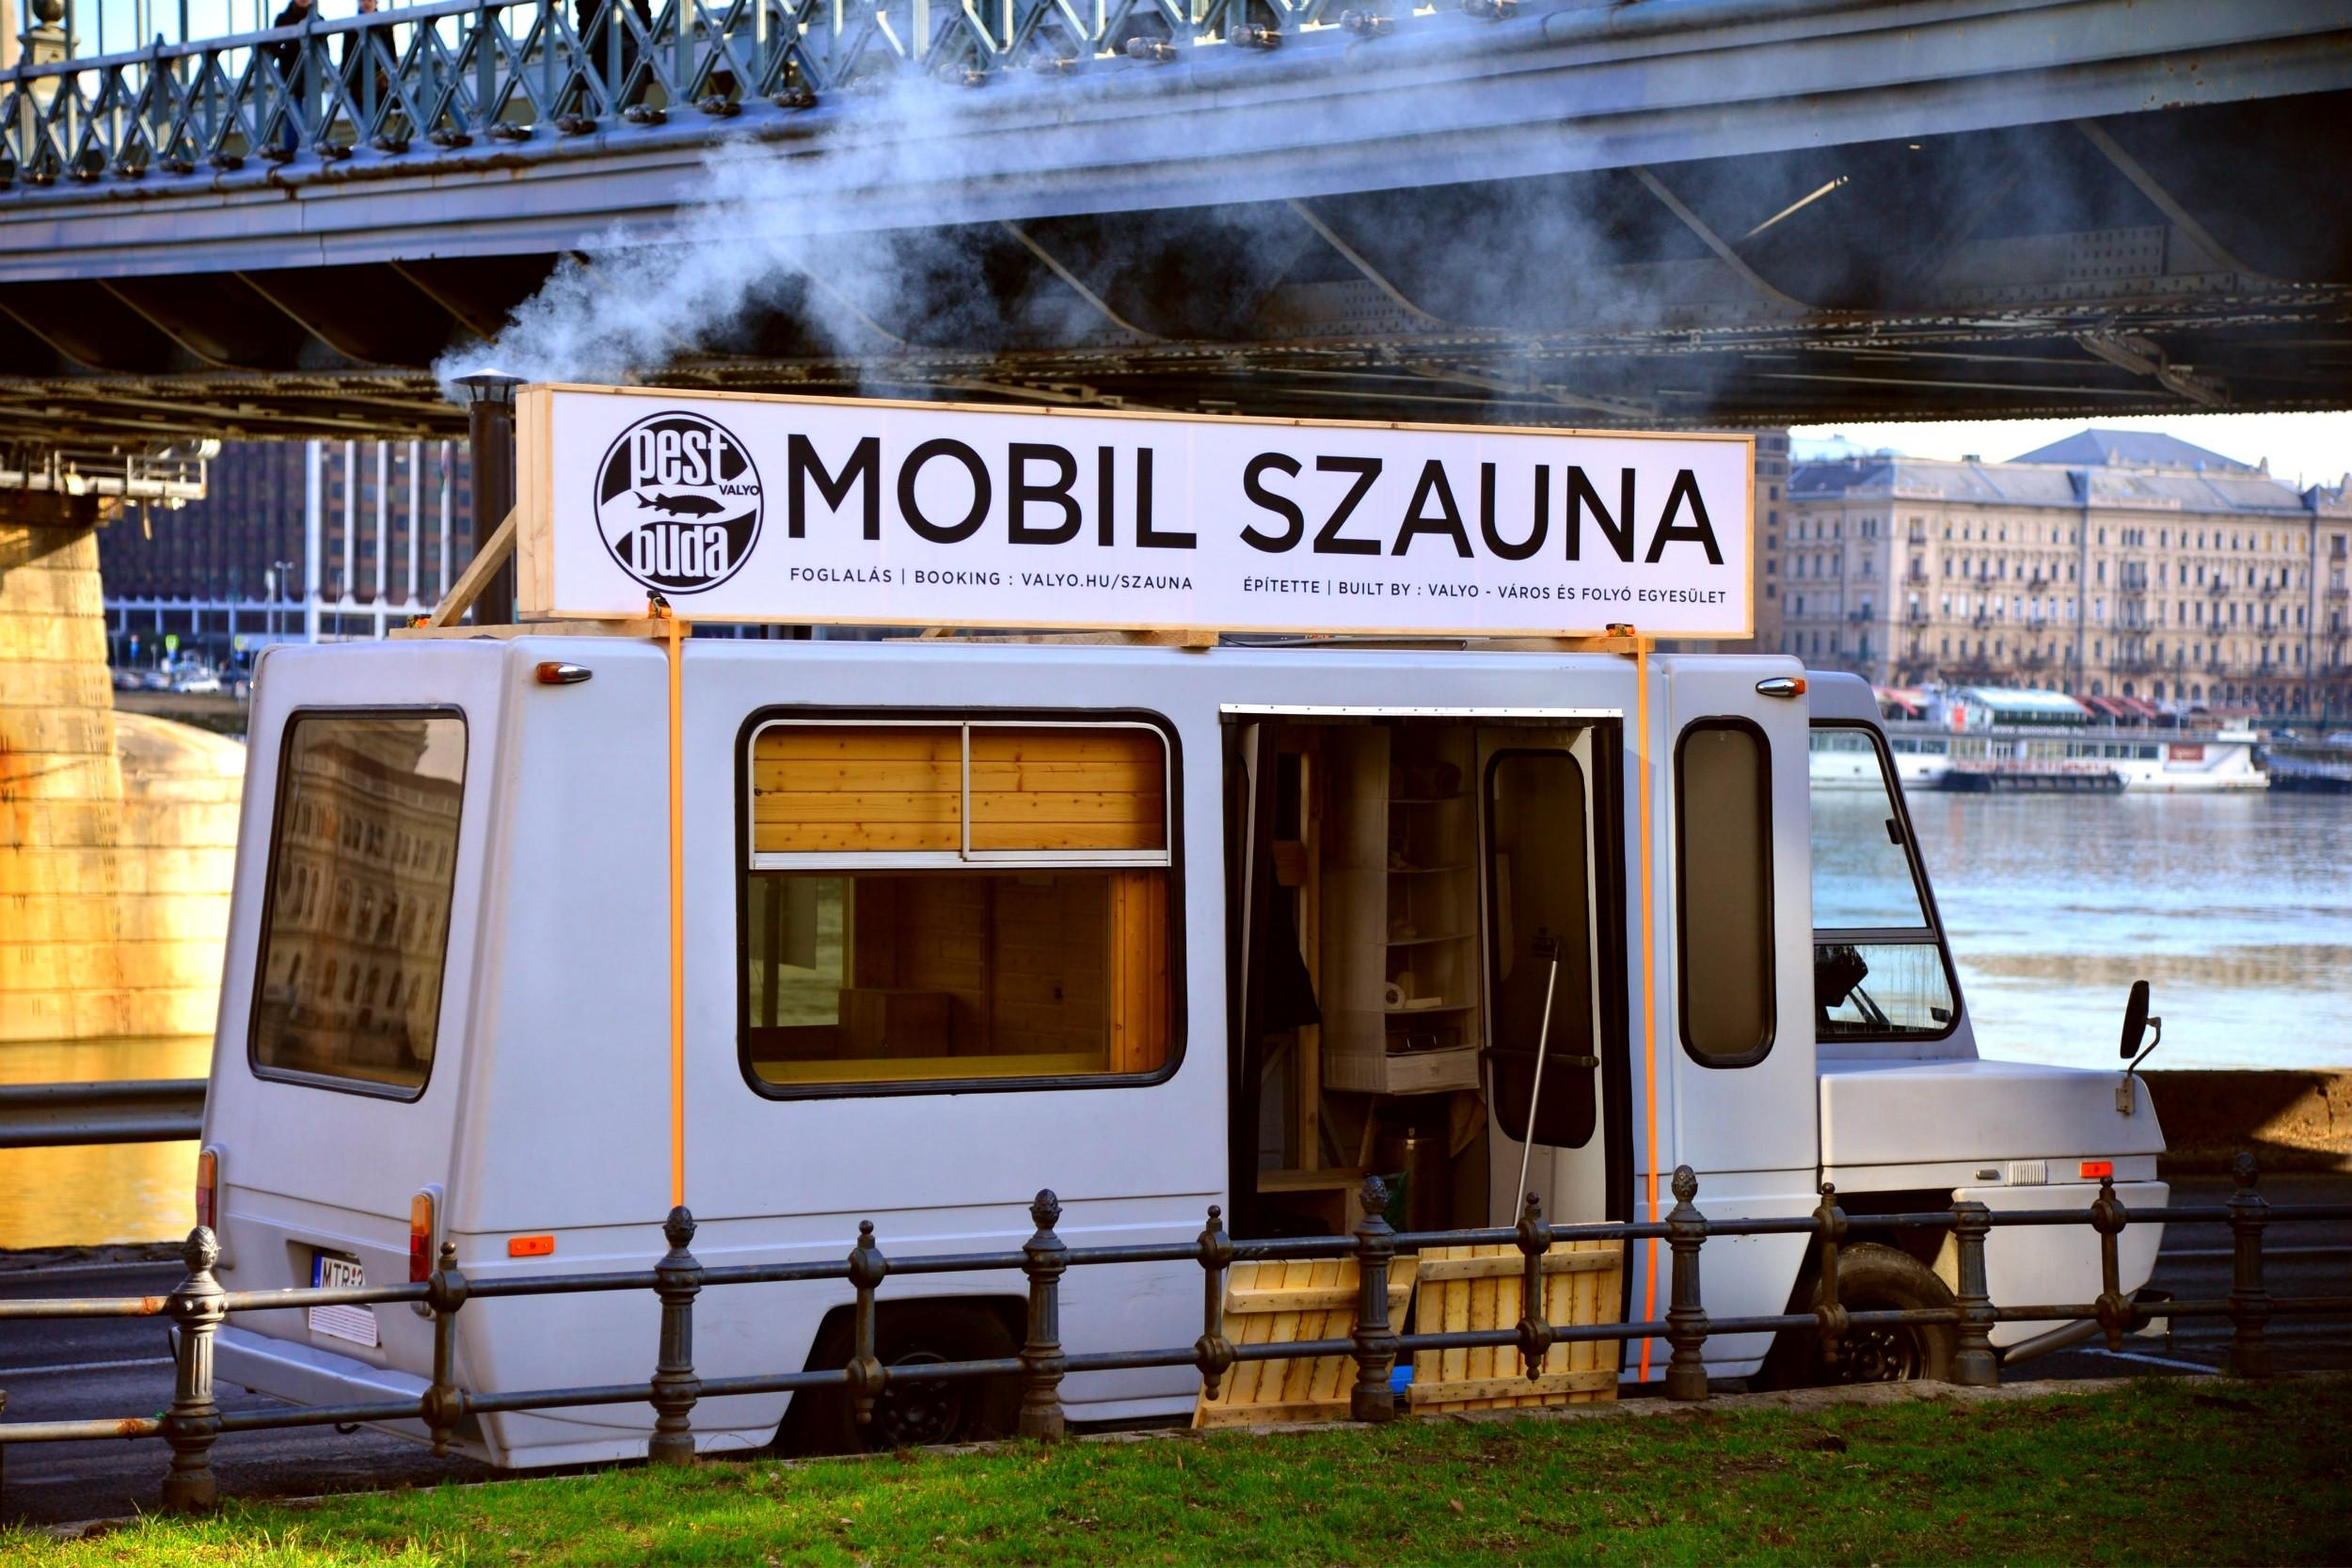 Video Report: Budapest's Mobile Sauna With A View